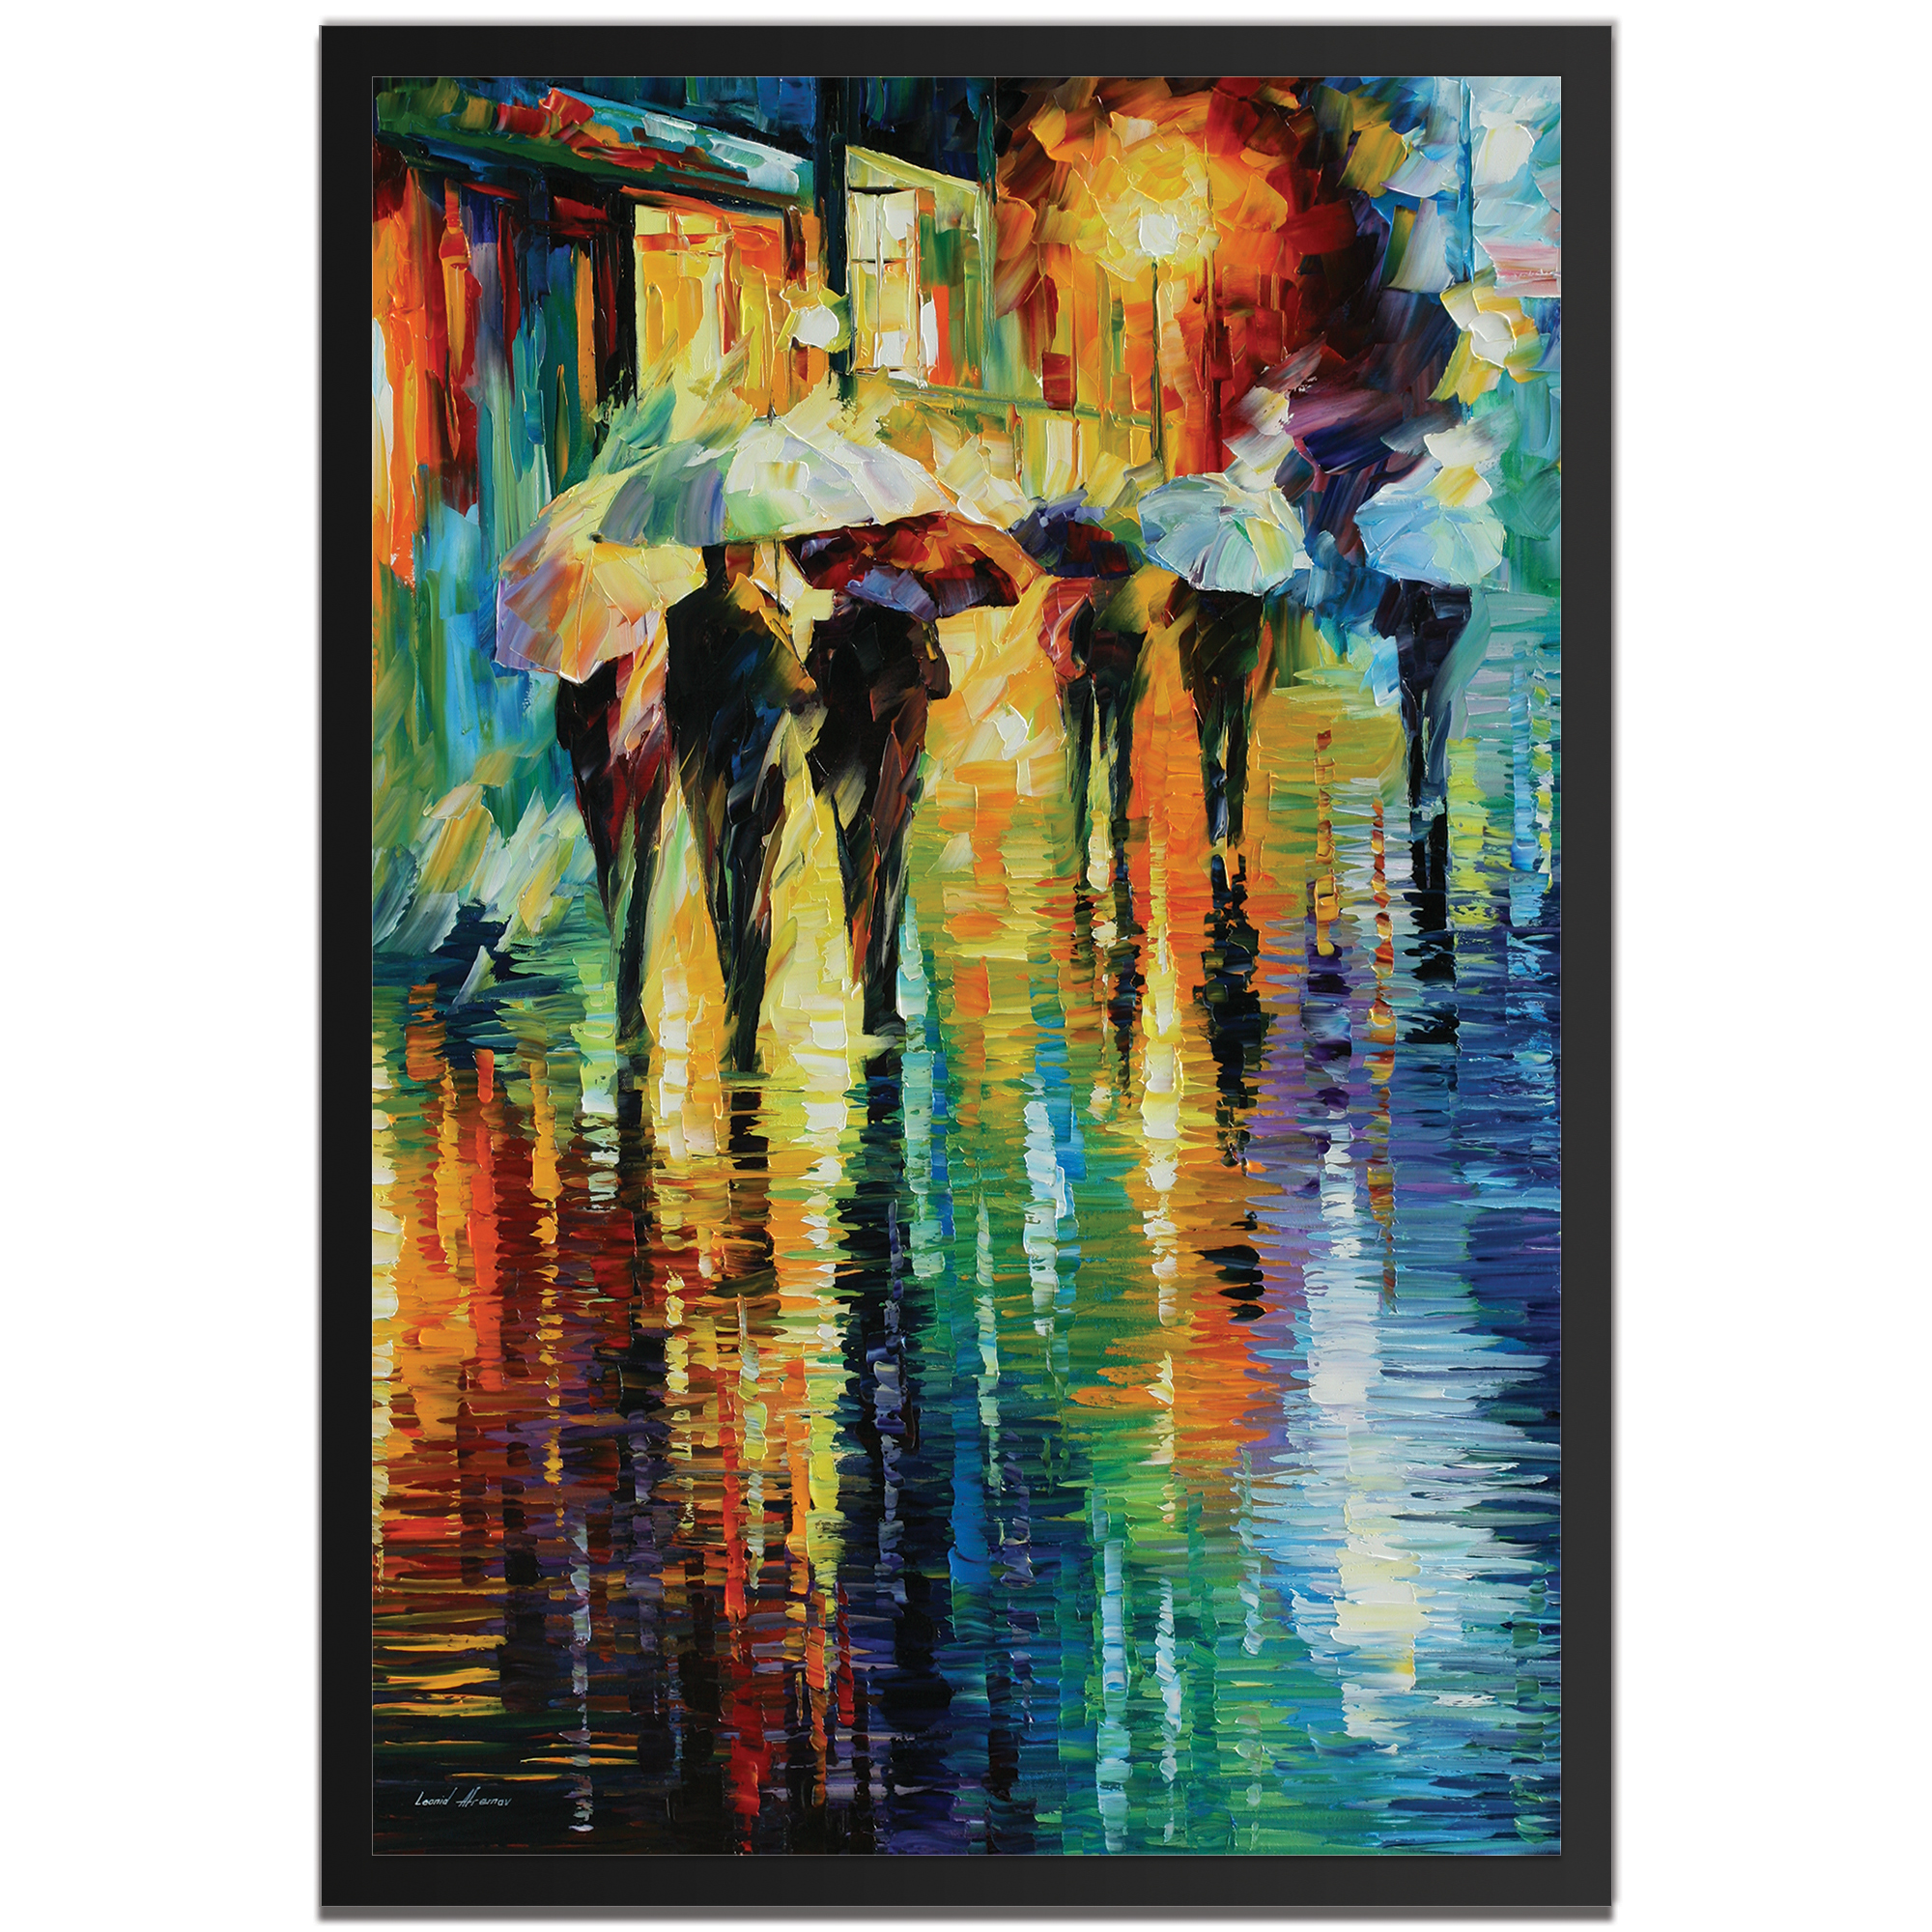 Leonid Afremov 'Rainy Etude Framed' 22in x 32in Abstract Cityscape Art on Colored Metal